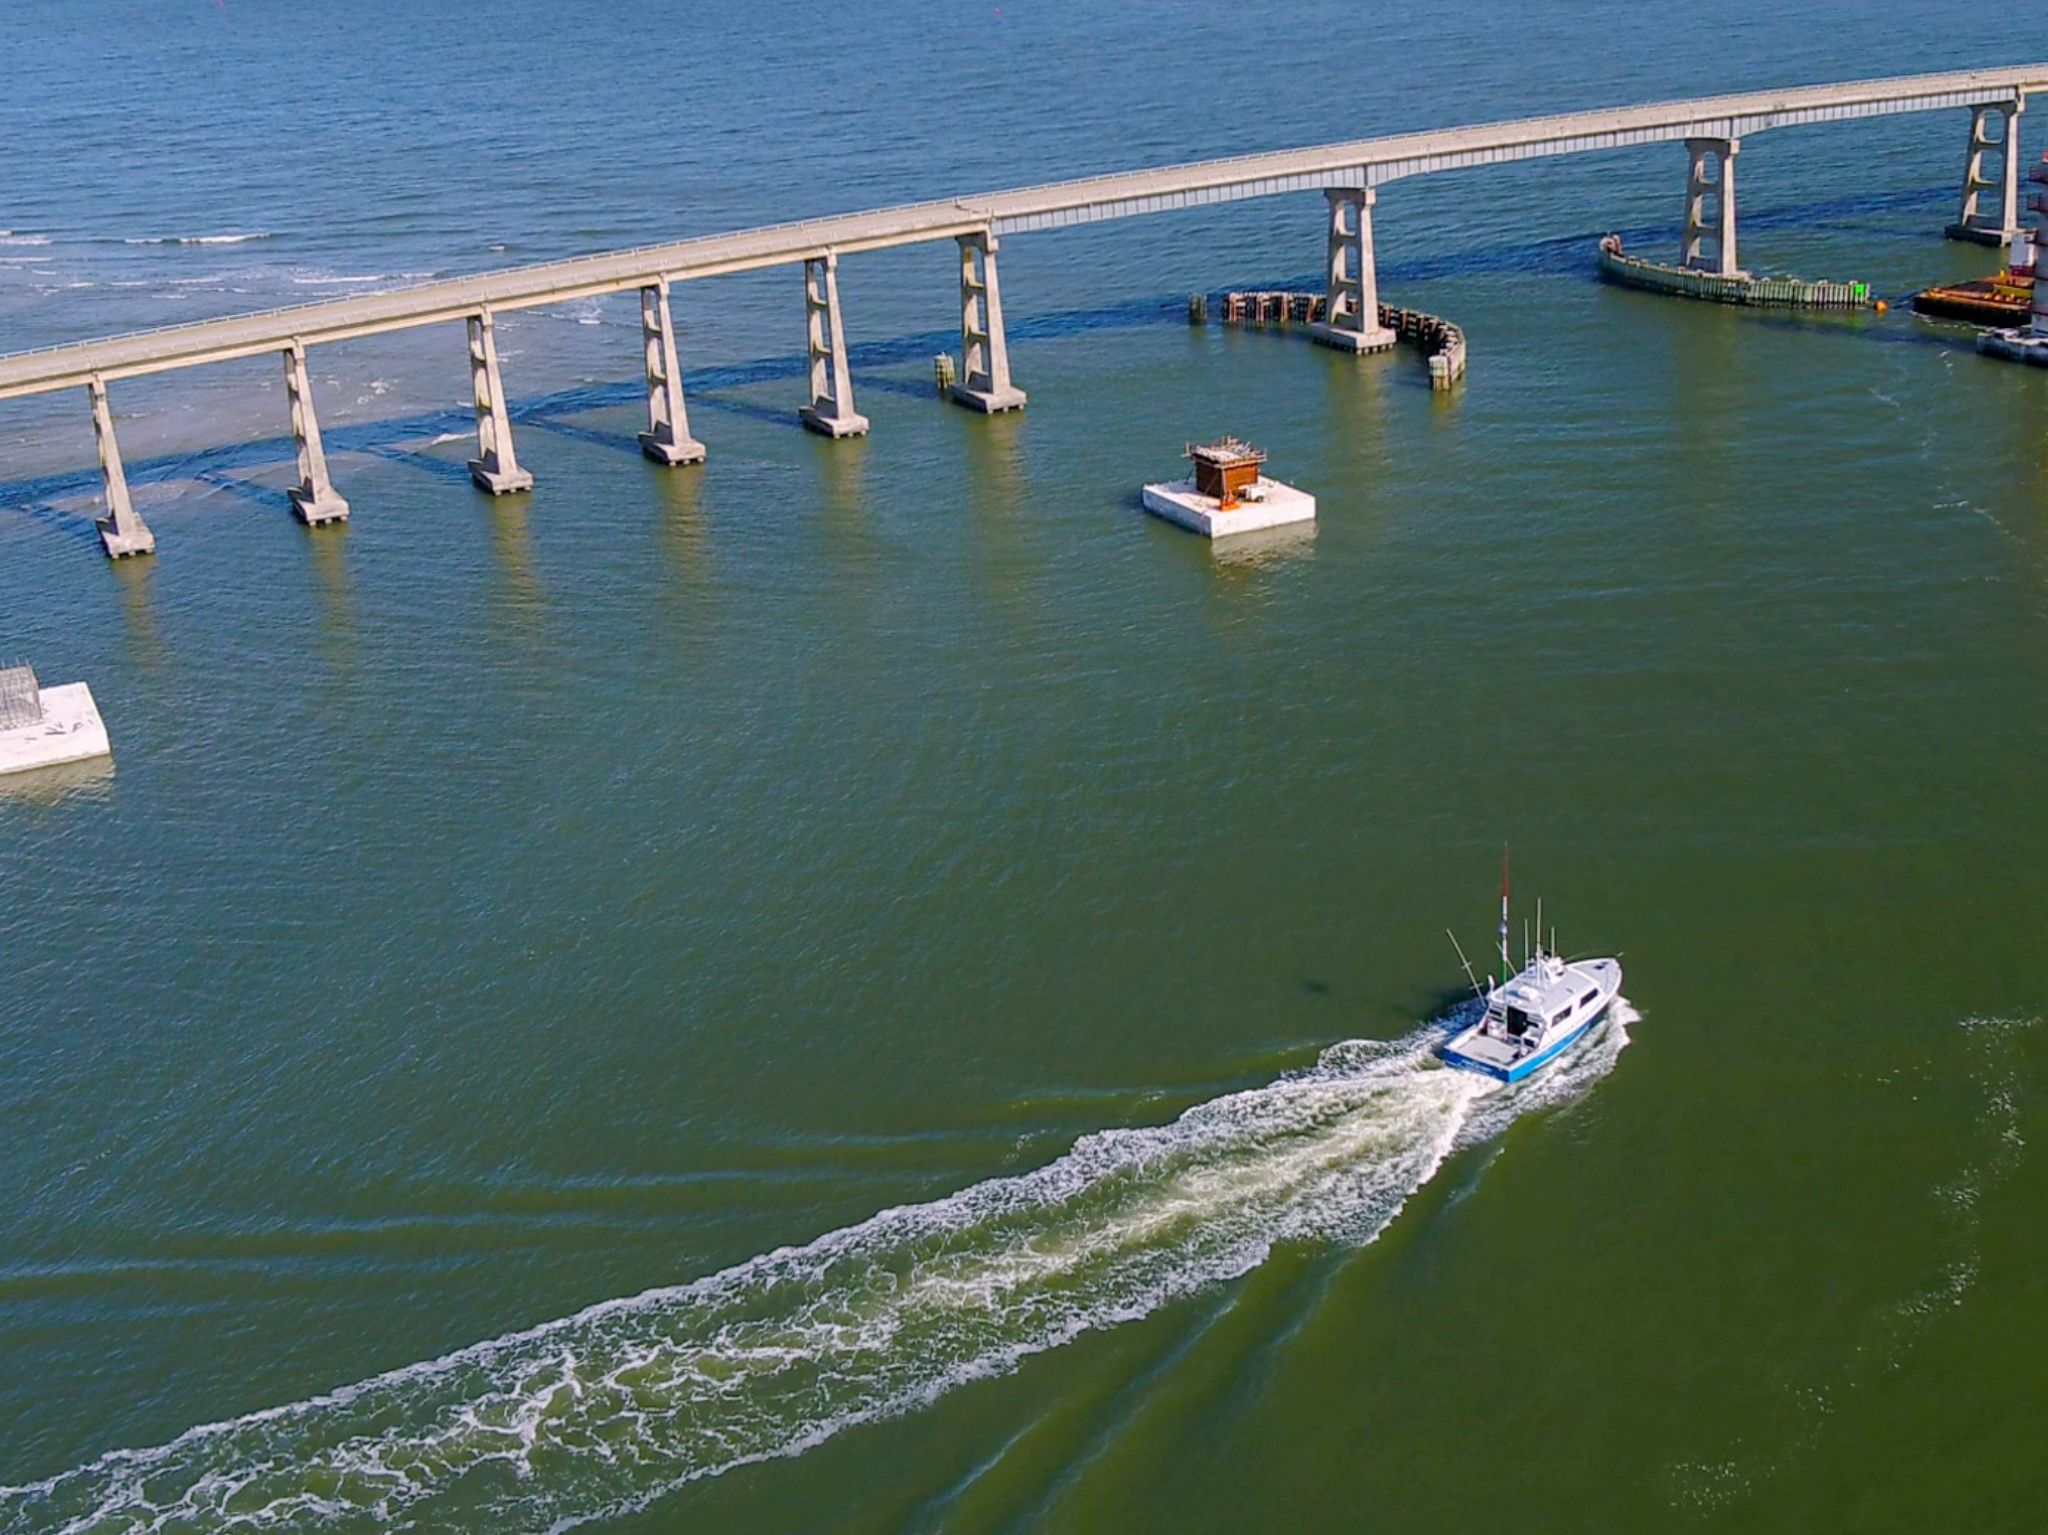 Outer Banks, NC - The Hot Tuna [Photo of the day - August 2021]